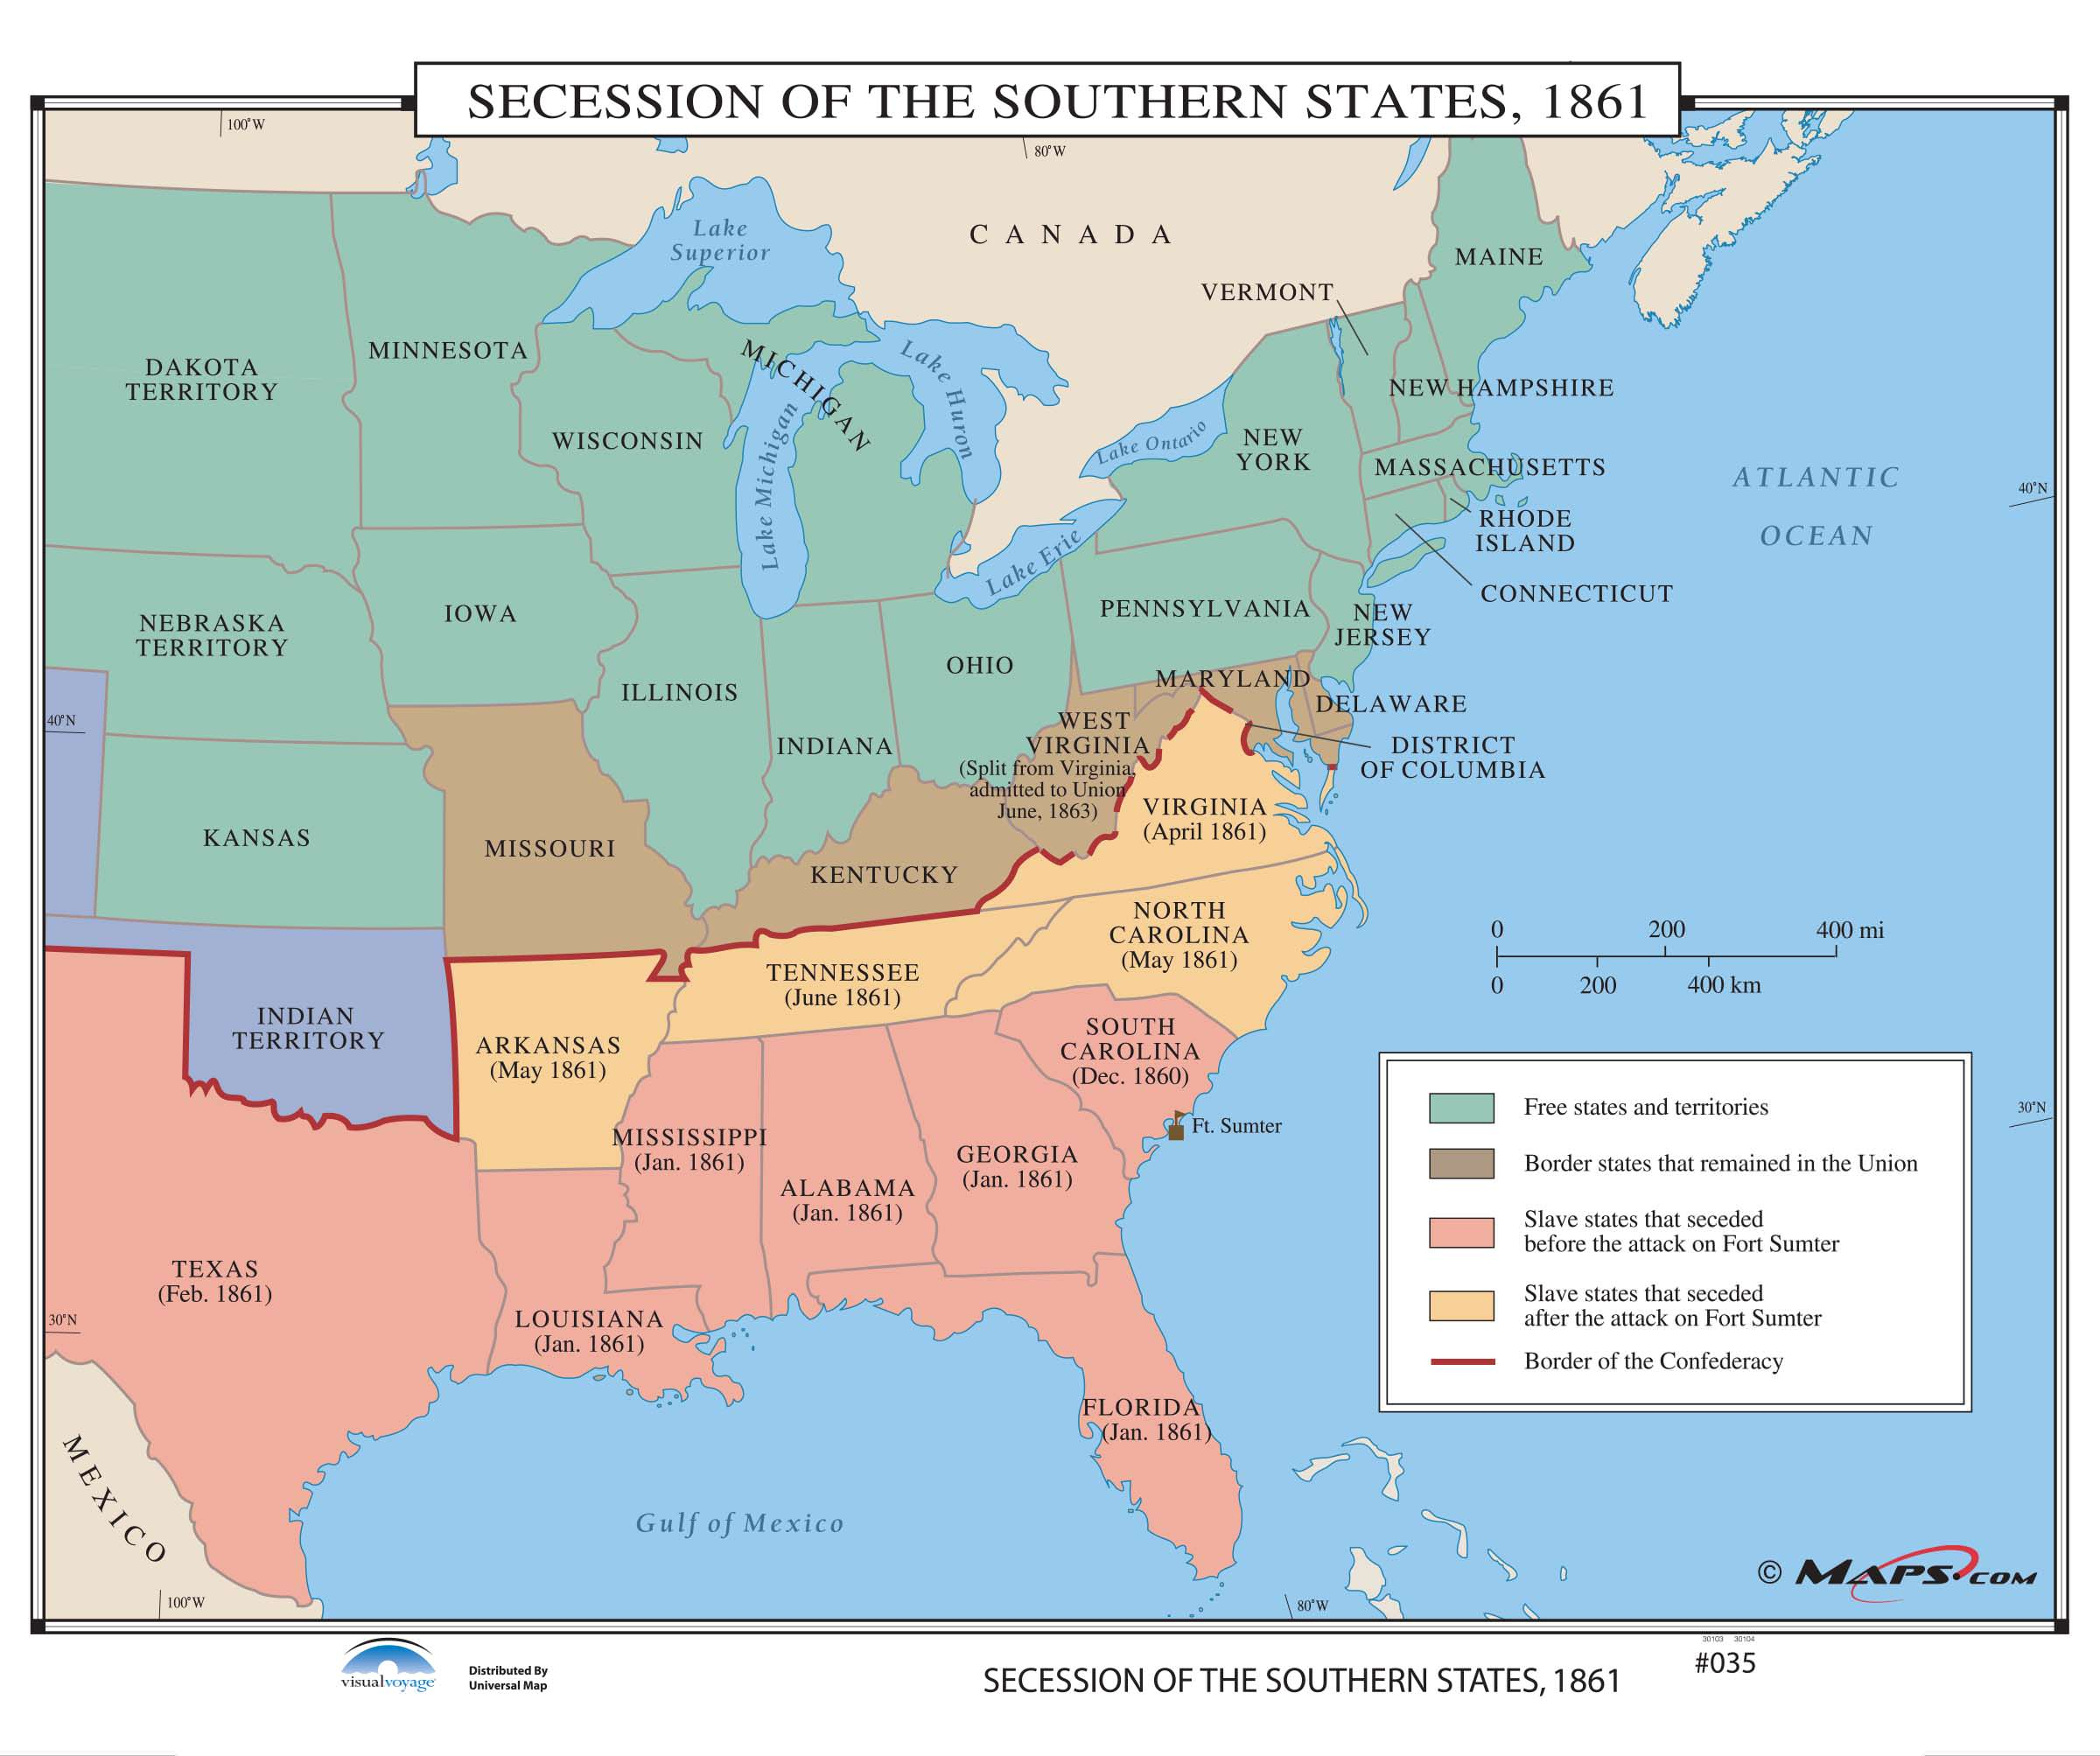 035 secession of the southern states 1861 kappa map group